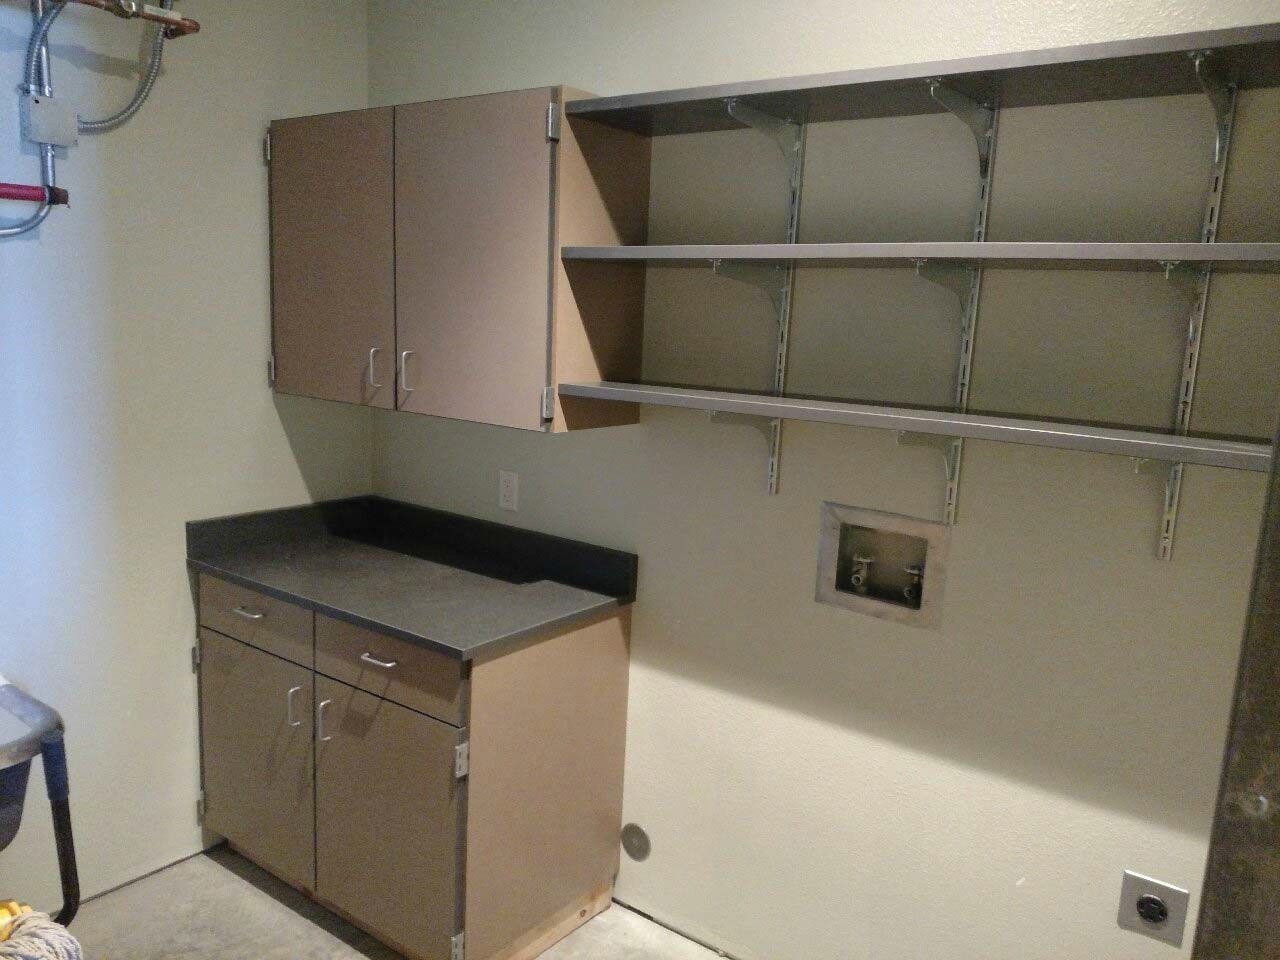 Cabinets installed in the admin utility room.